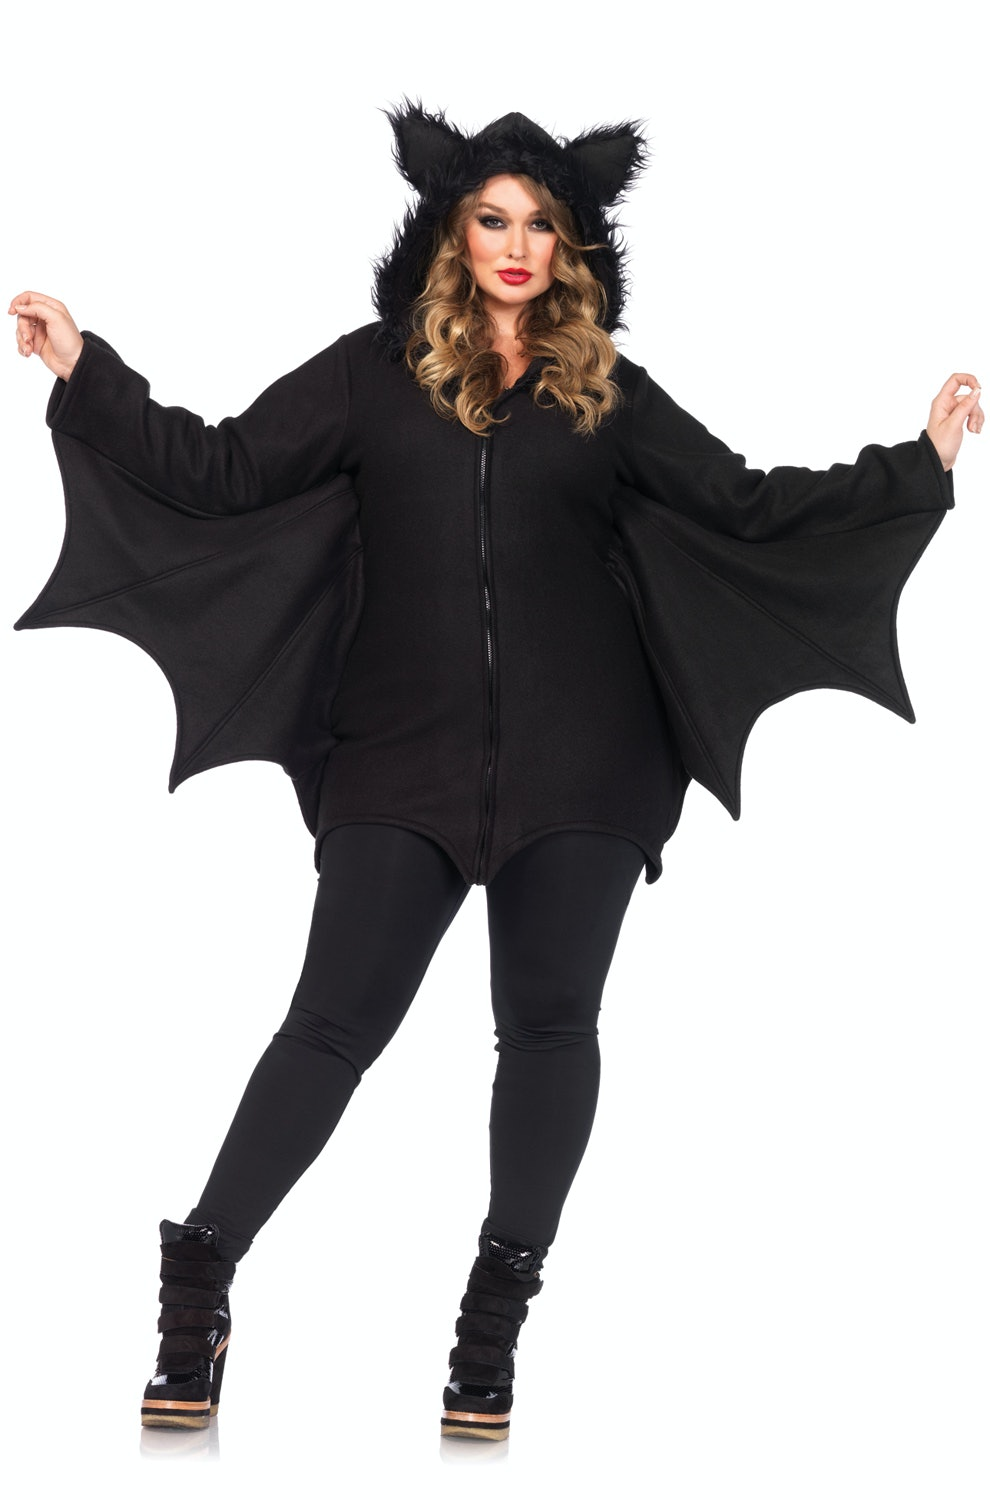 19 Plus Size Halloween Costumes In 5x 6x u0026 Higher Because Fantasy Has No Size Limit  sc 1 st  Bustle & 19 Plus Size Halloween Costumes In 5x 6x u0026 Higher Because Fantasy ...